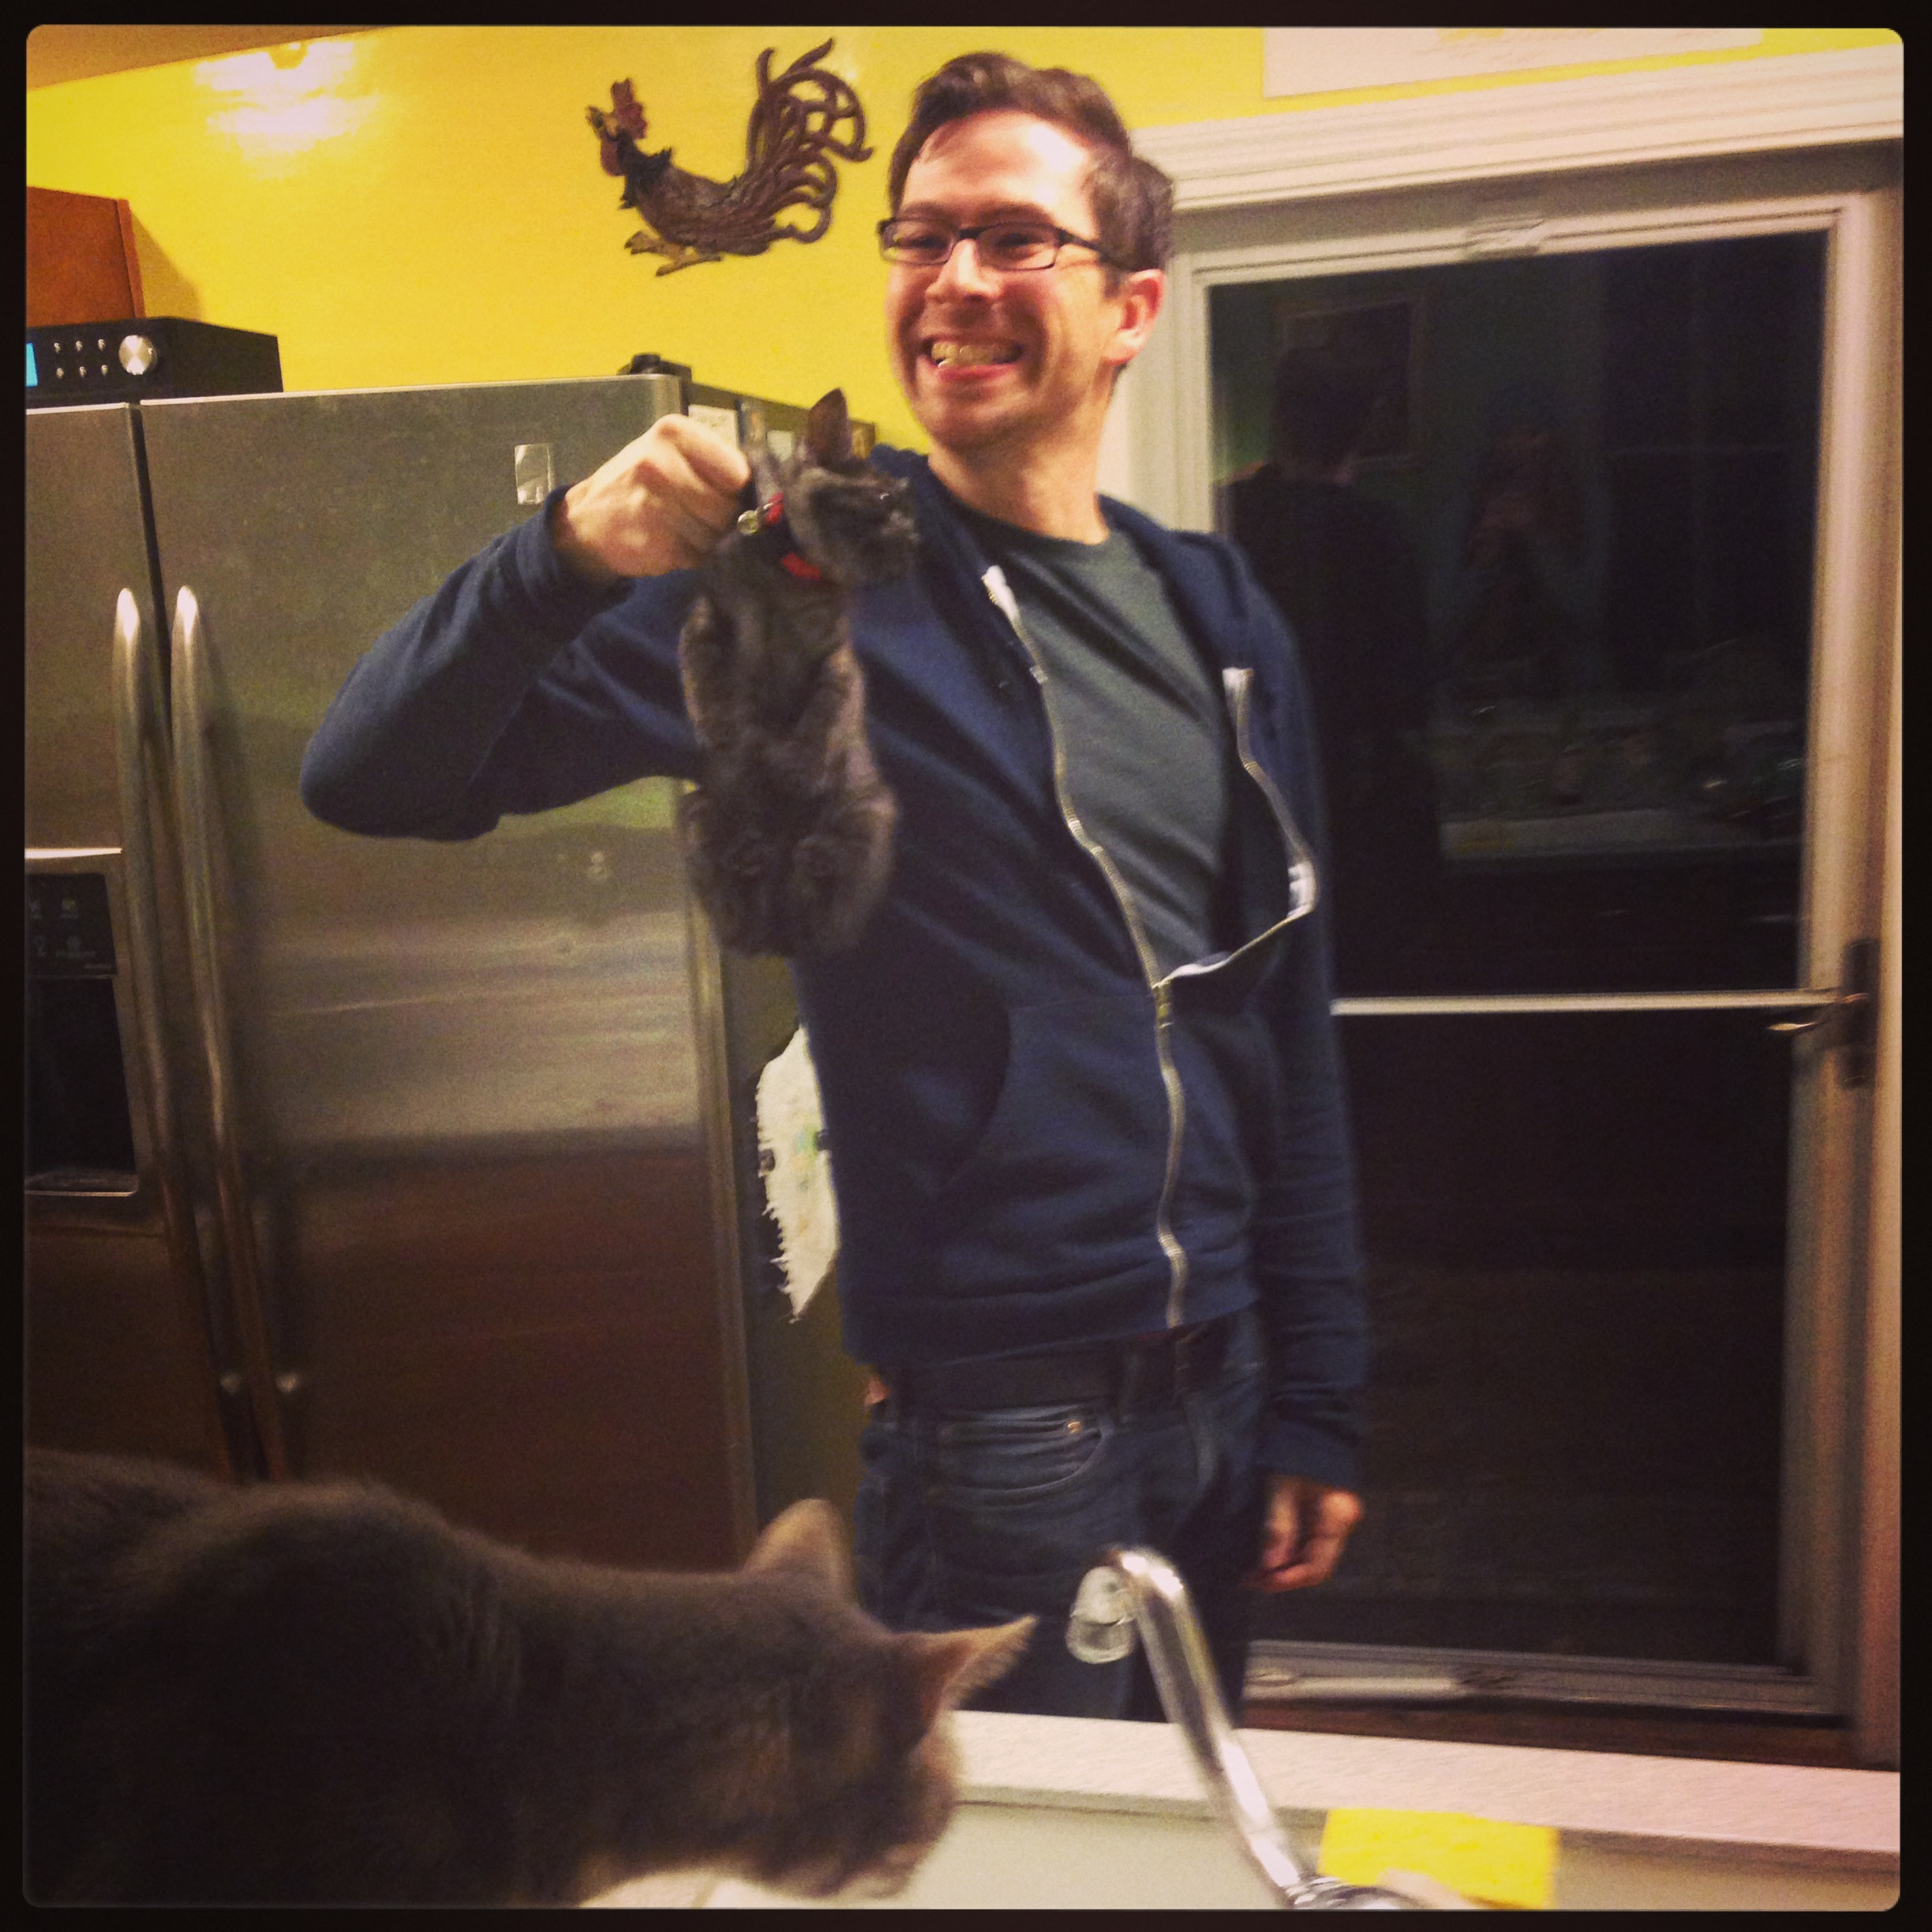 Did I mention Adam's also a fearless hunter of cats and other small game?